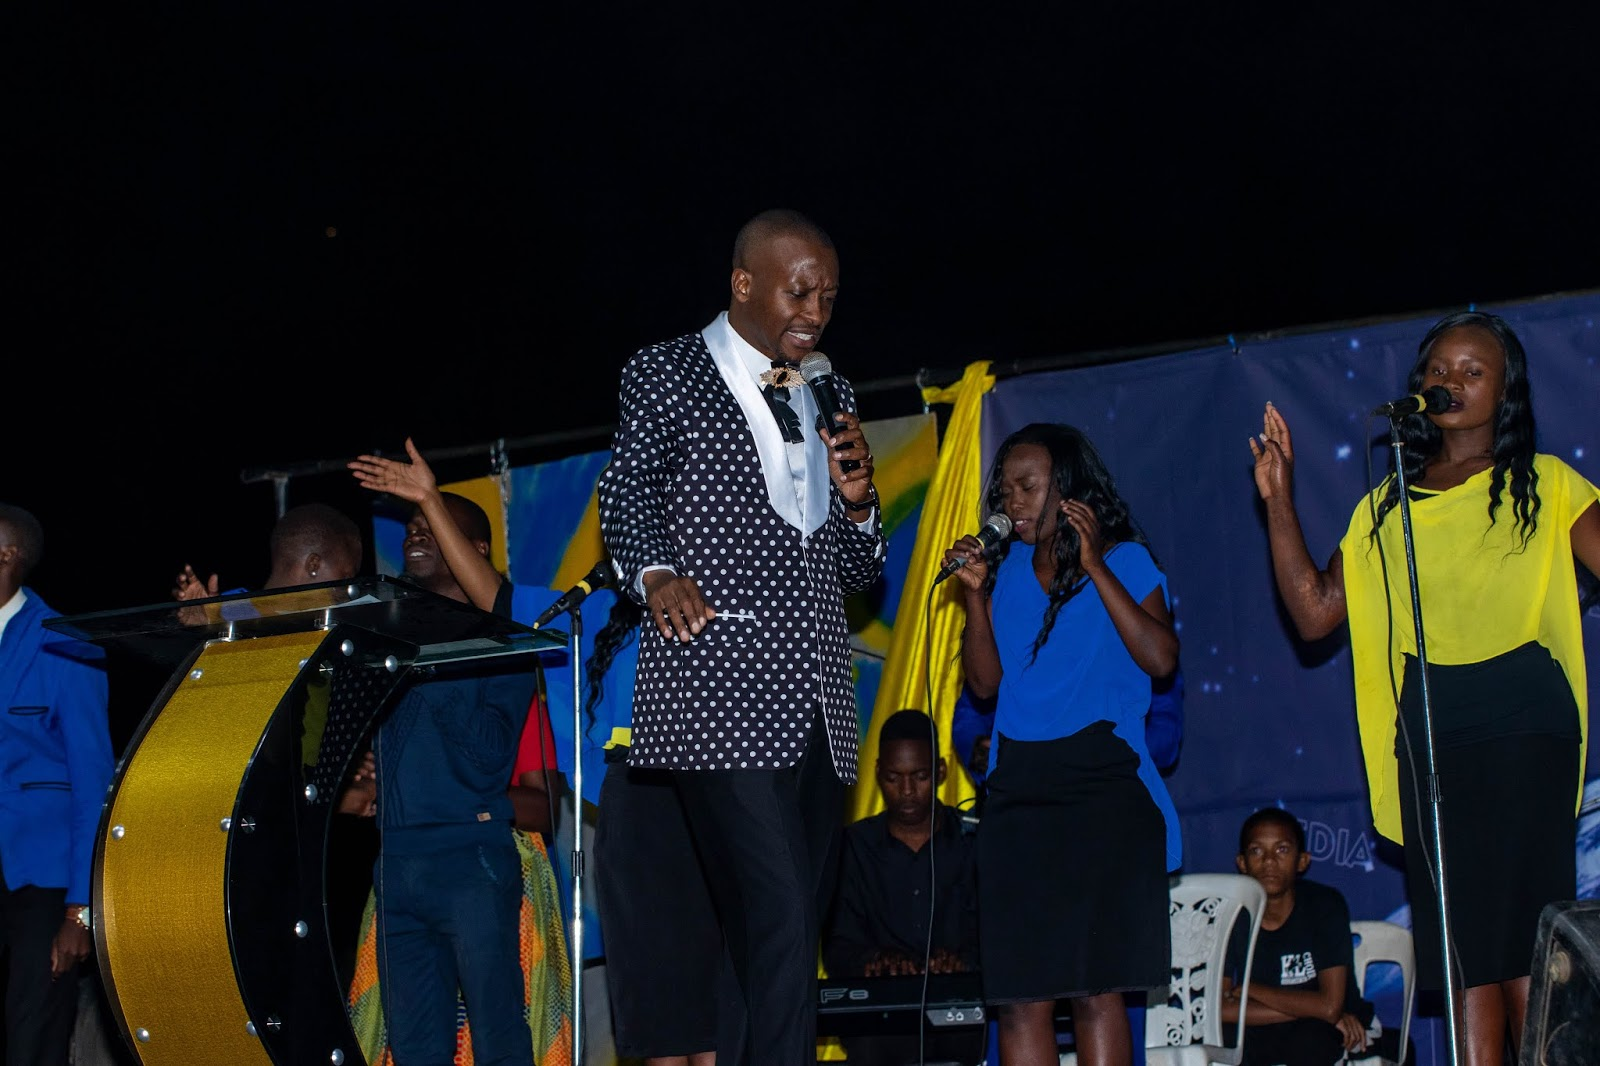 Apostle Pride Sibiya Introduces Apostle Alexander Chisango At Tiyambuke 2018 Day One